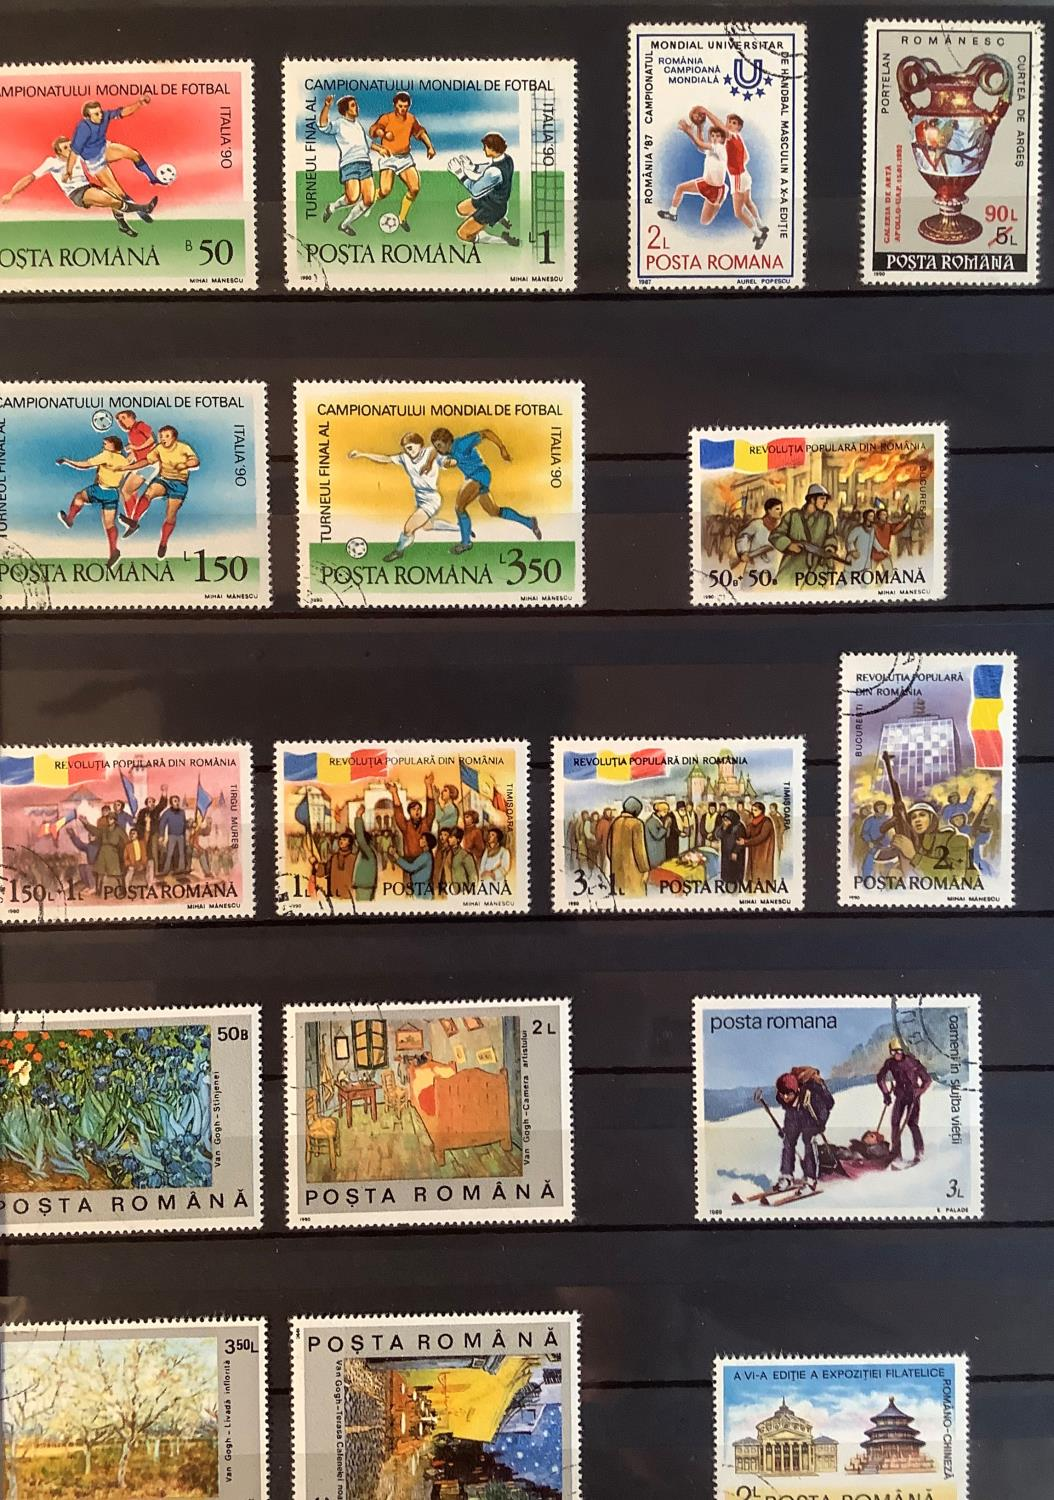 Three Stock Books with a large collection of Romanian postage stamps dating from 1925 to 1990s, a - Image 6 of 7